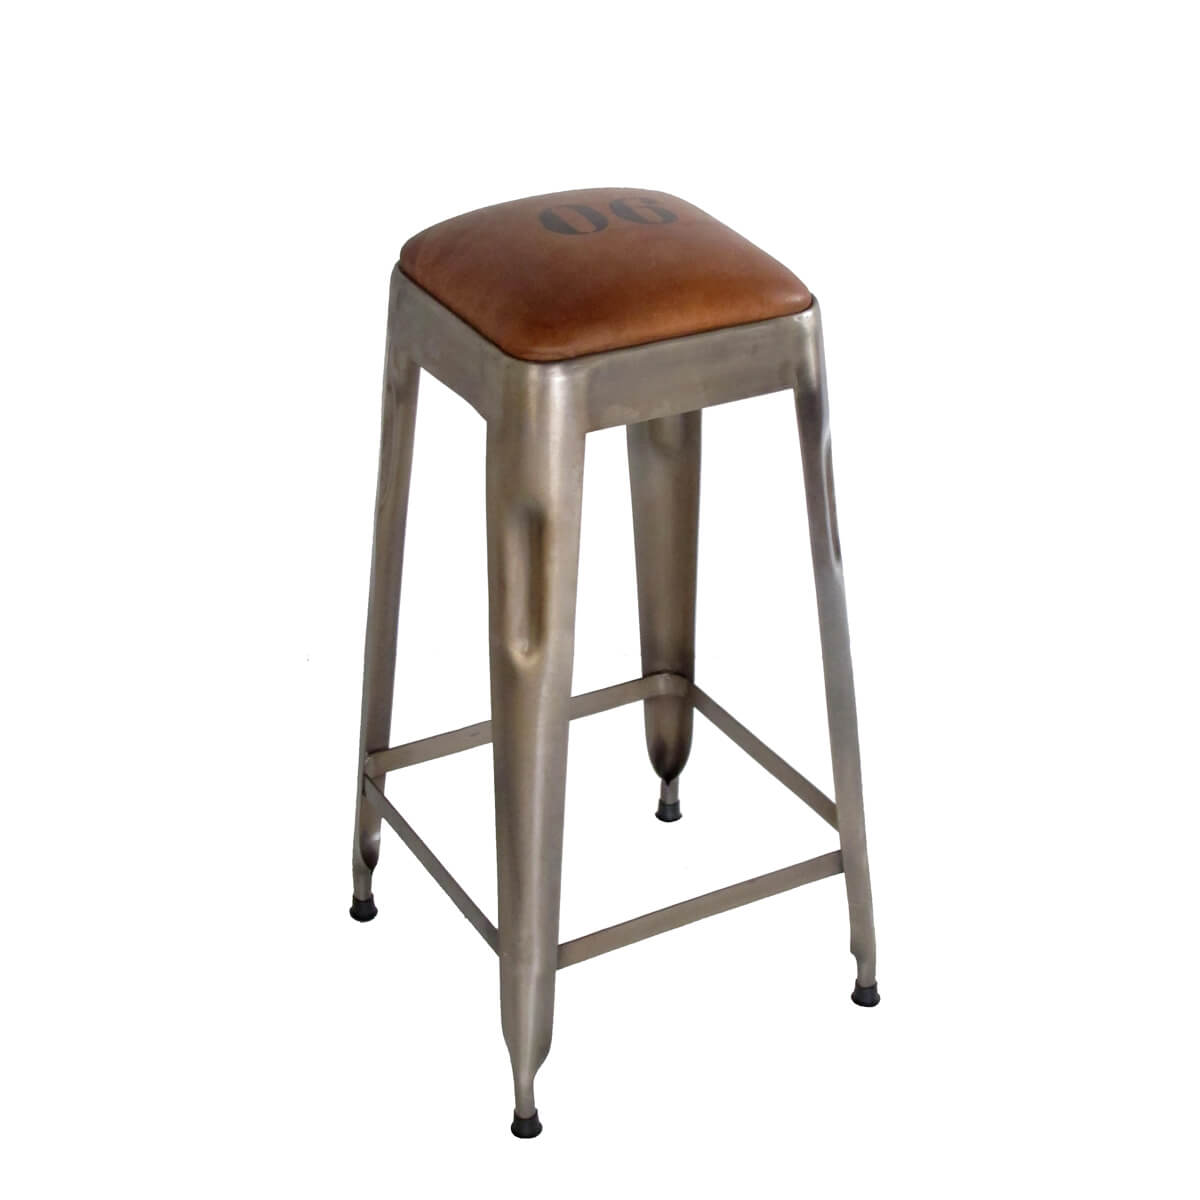 Awe Inspiring Ironworks Counter Stool W Leather Top High Fashion Home Uwap Interior Chair Design Uwaporg